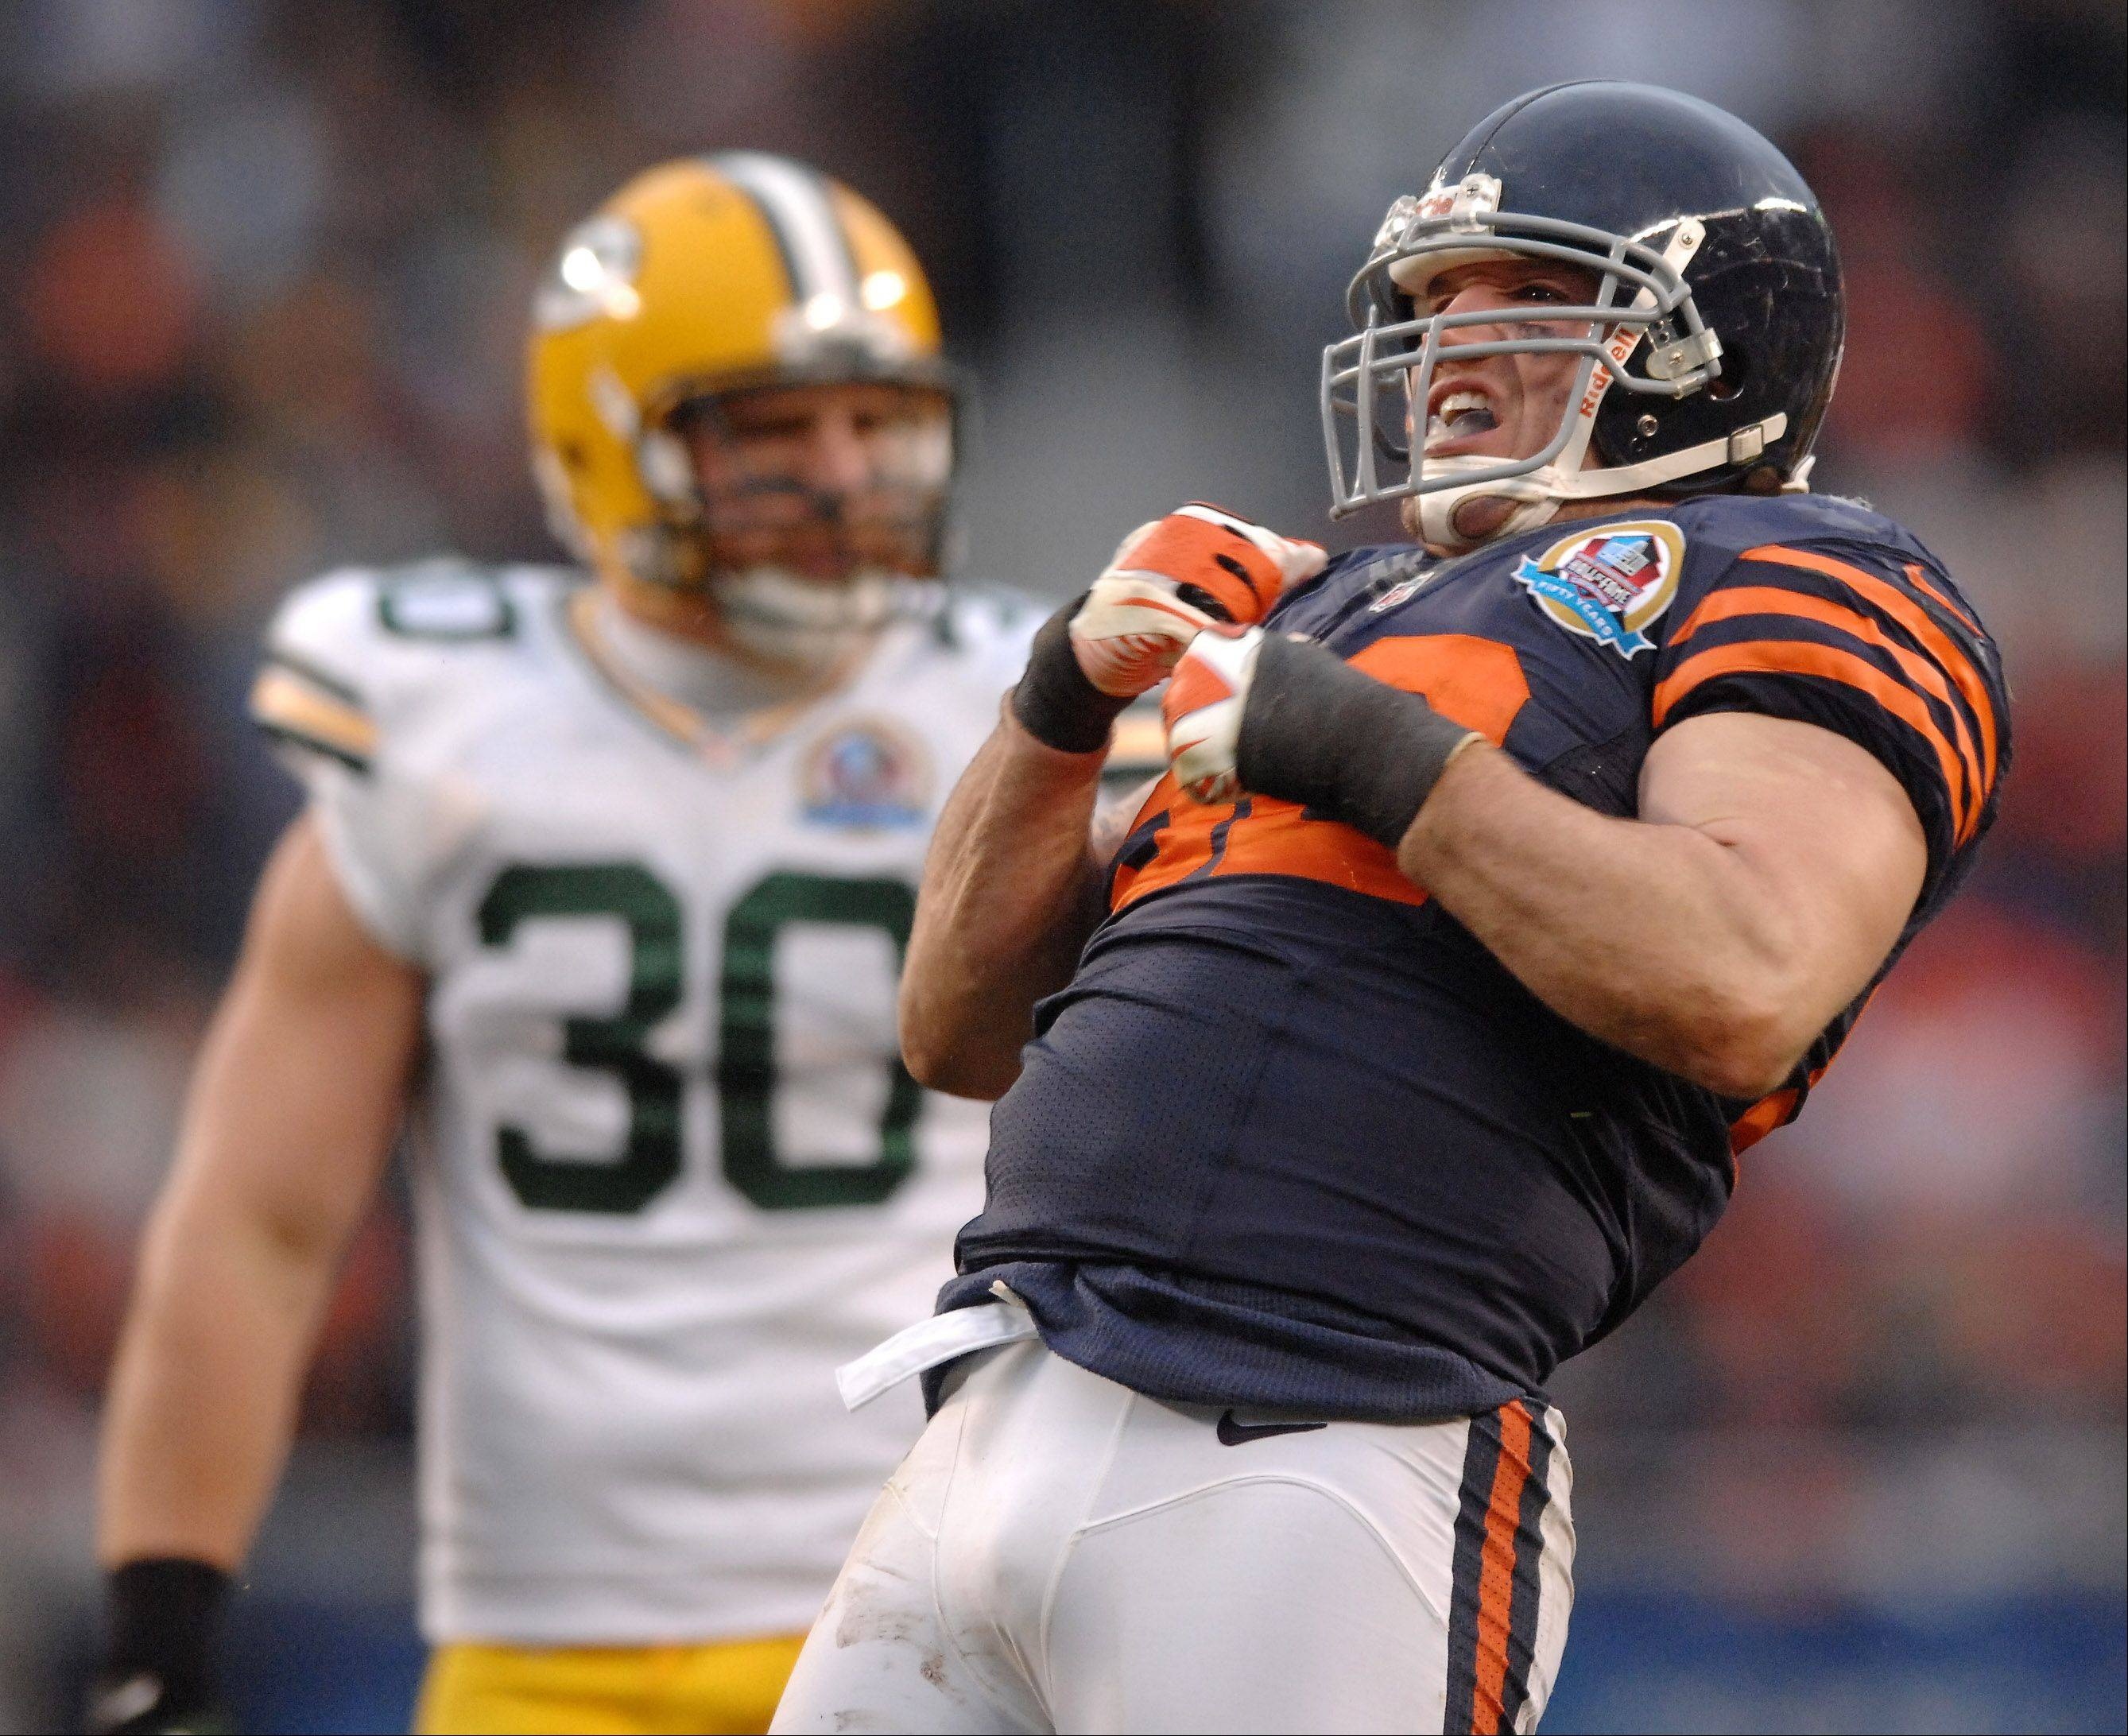 Chicago Bears linebacker Blake Costanzo (52) celebrates a big play during Sunday's game at Soldier Field in Chicago.